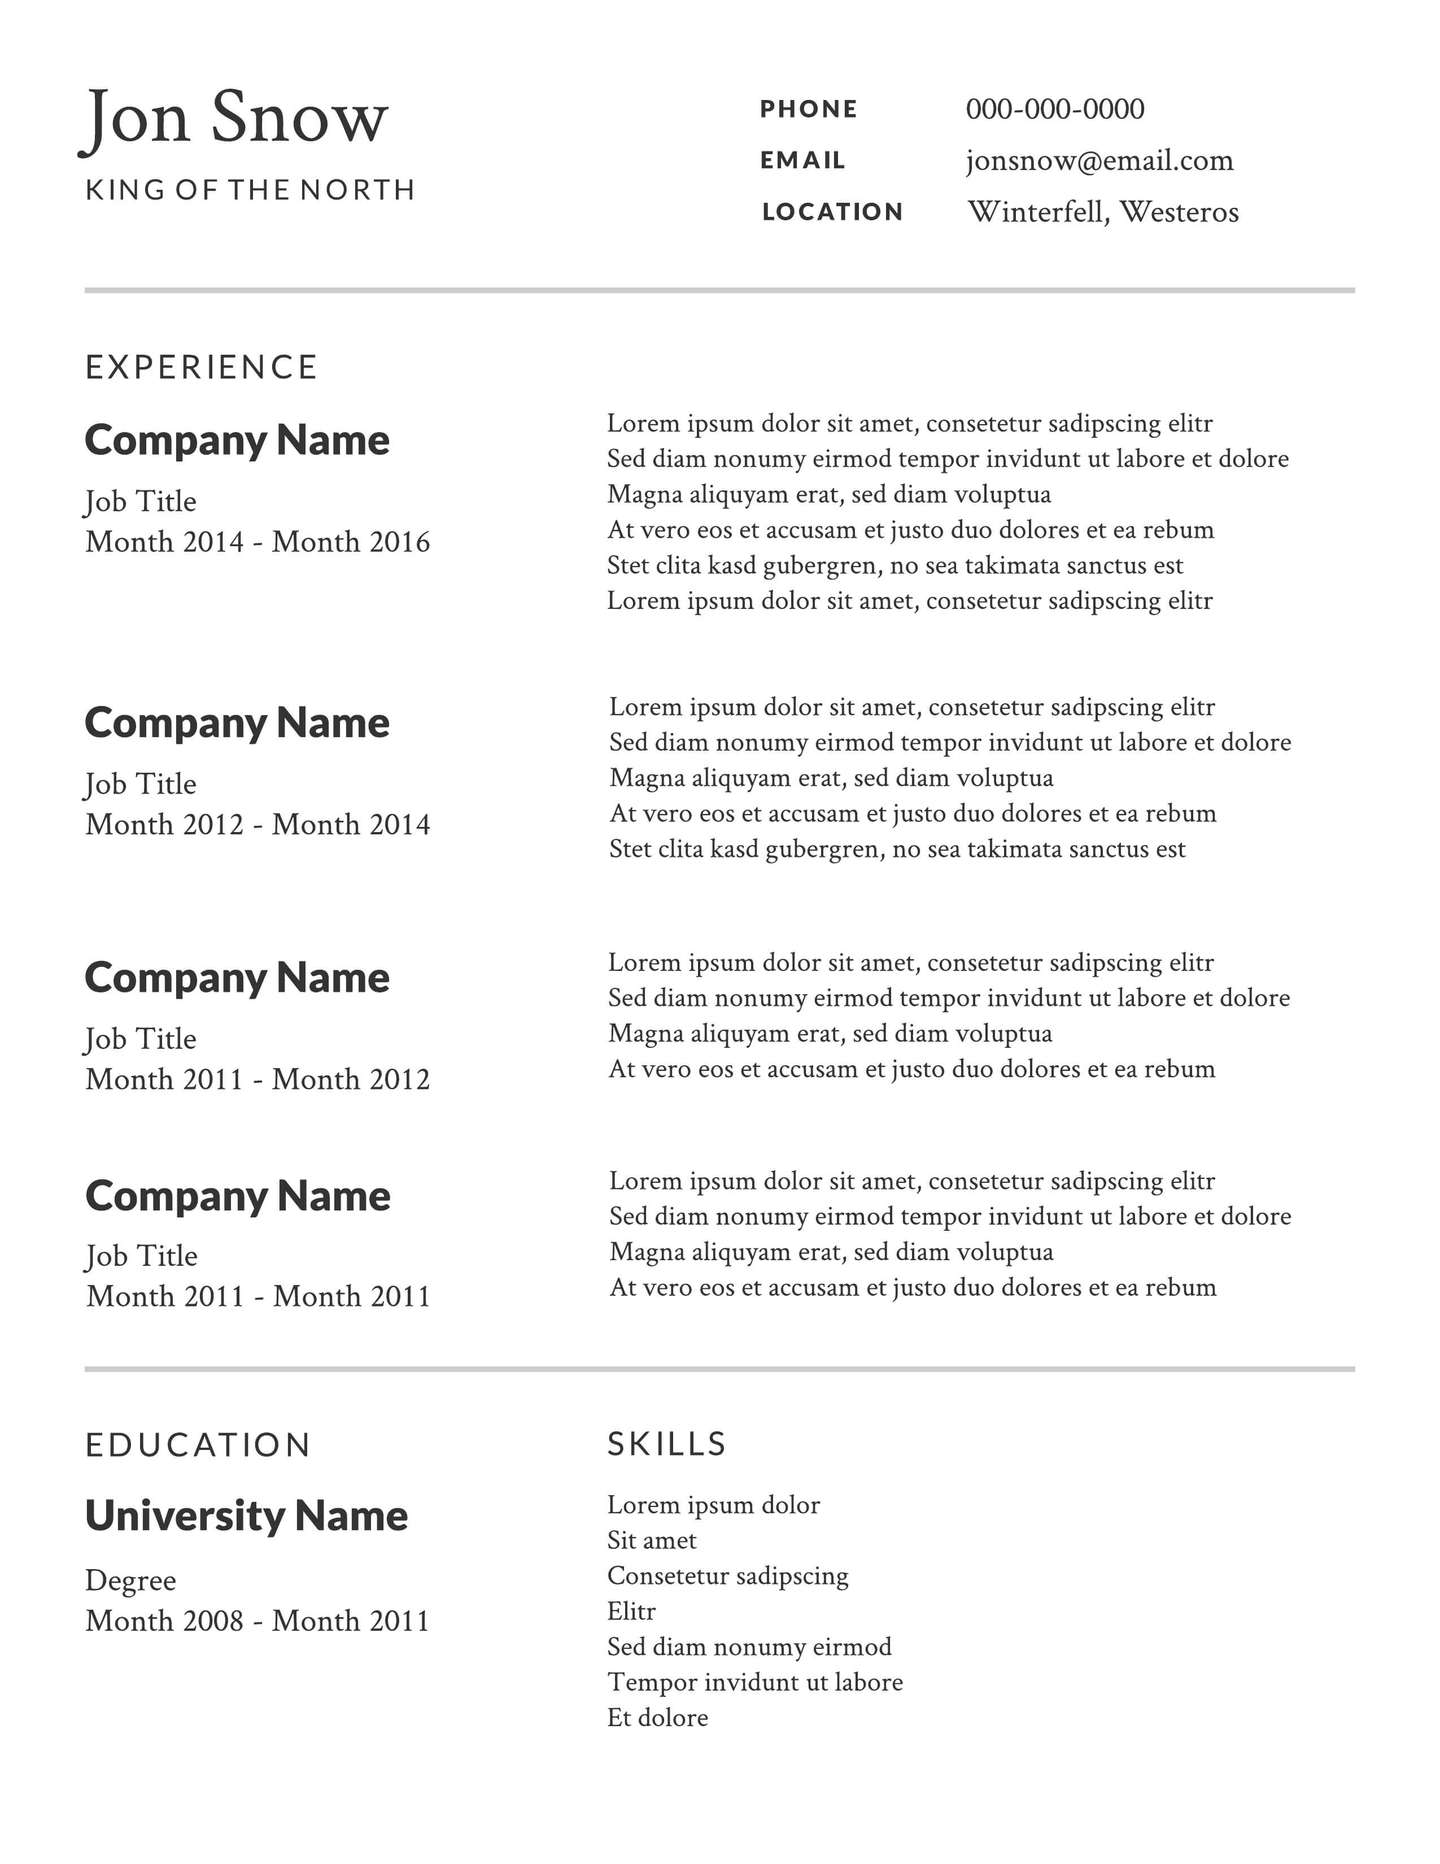 free professional resume templates downloadable lucidpress can get 2x extra skills Resume Where Can I Get Free Resume Templates